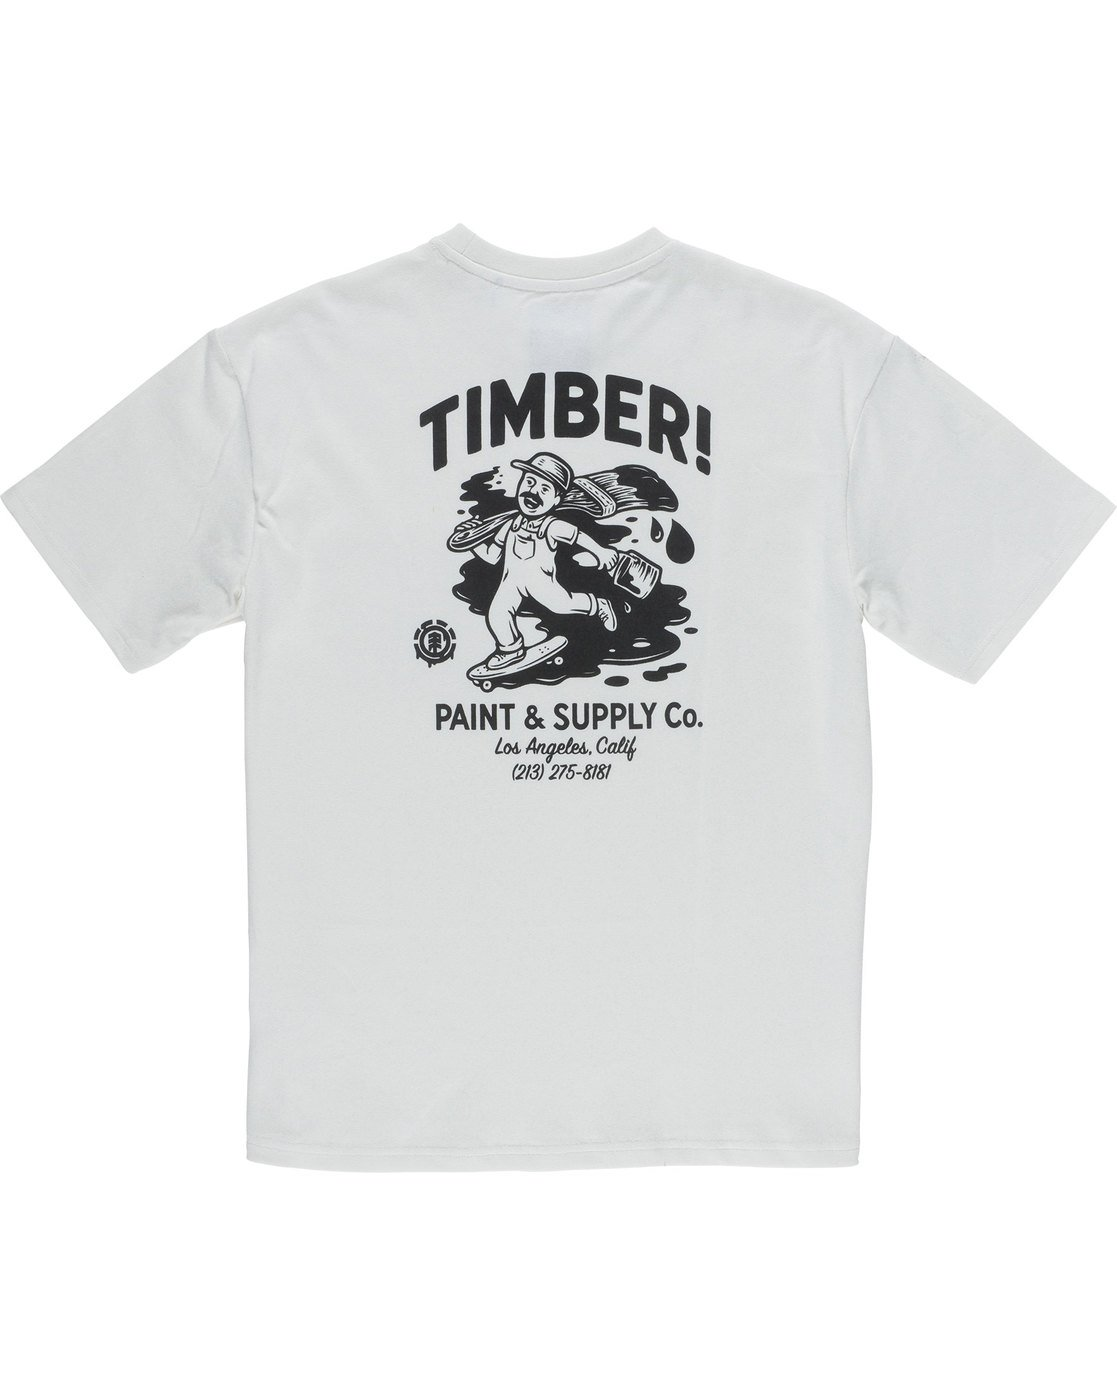 7 Timber Heavy Ss Tee - Knit for Men White N1KTC5ELP9 Element